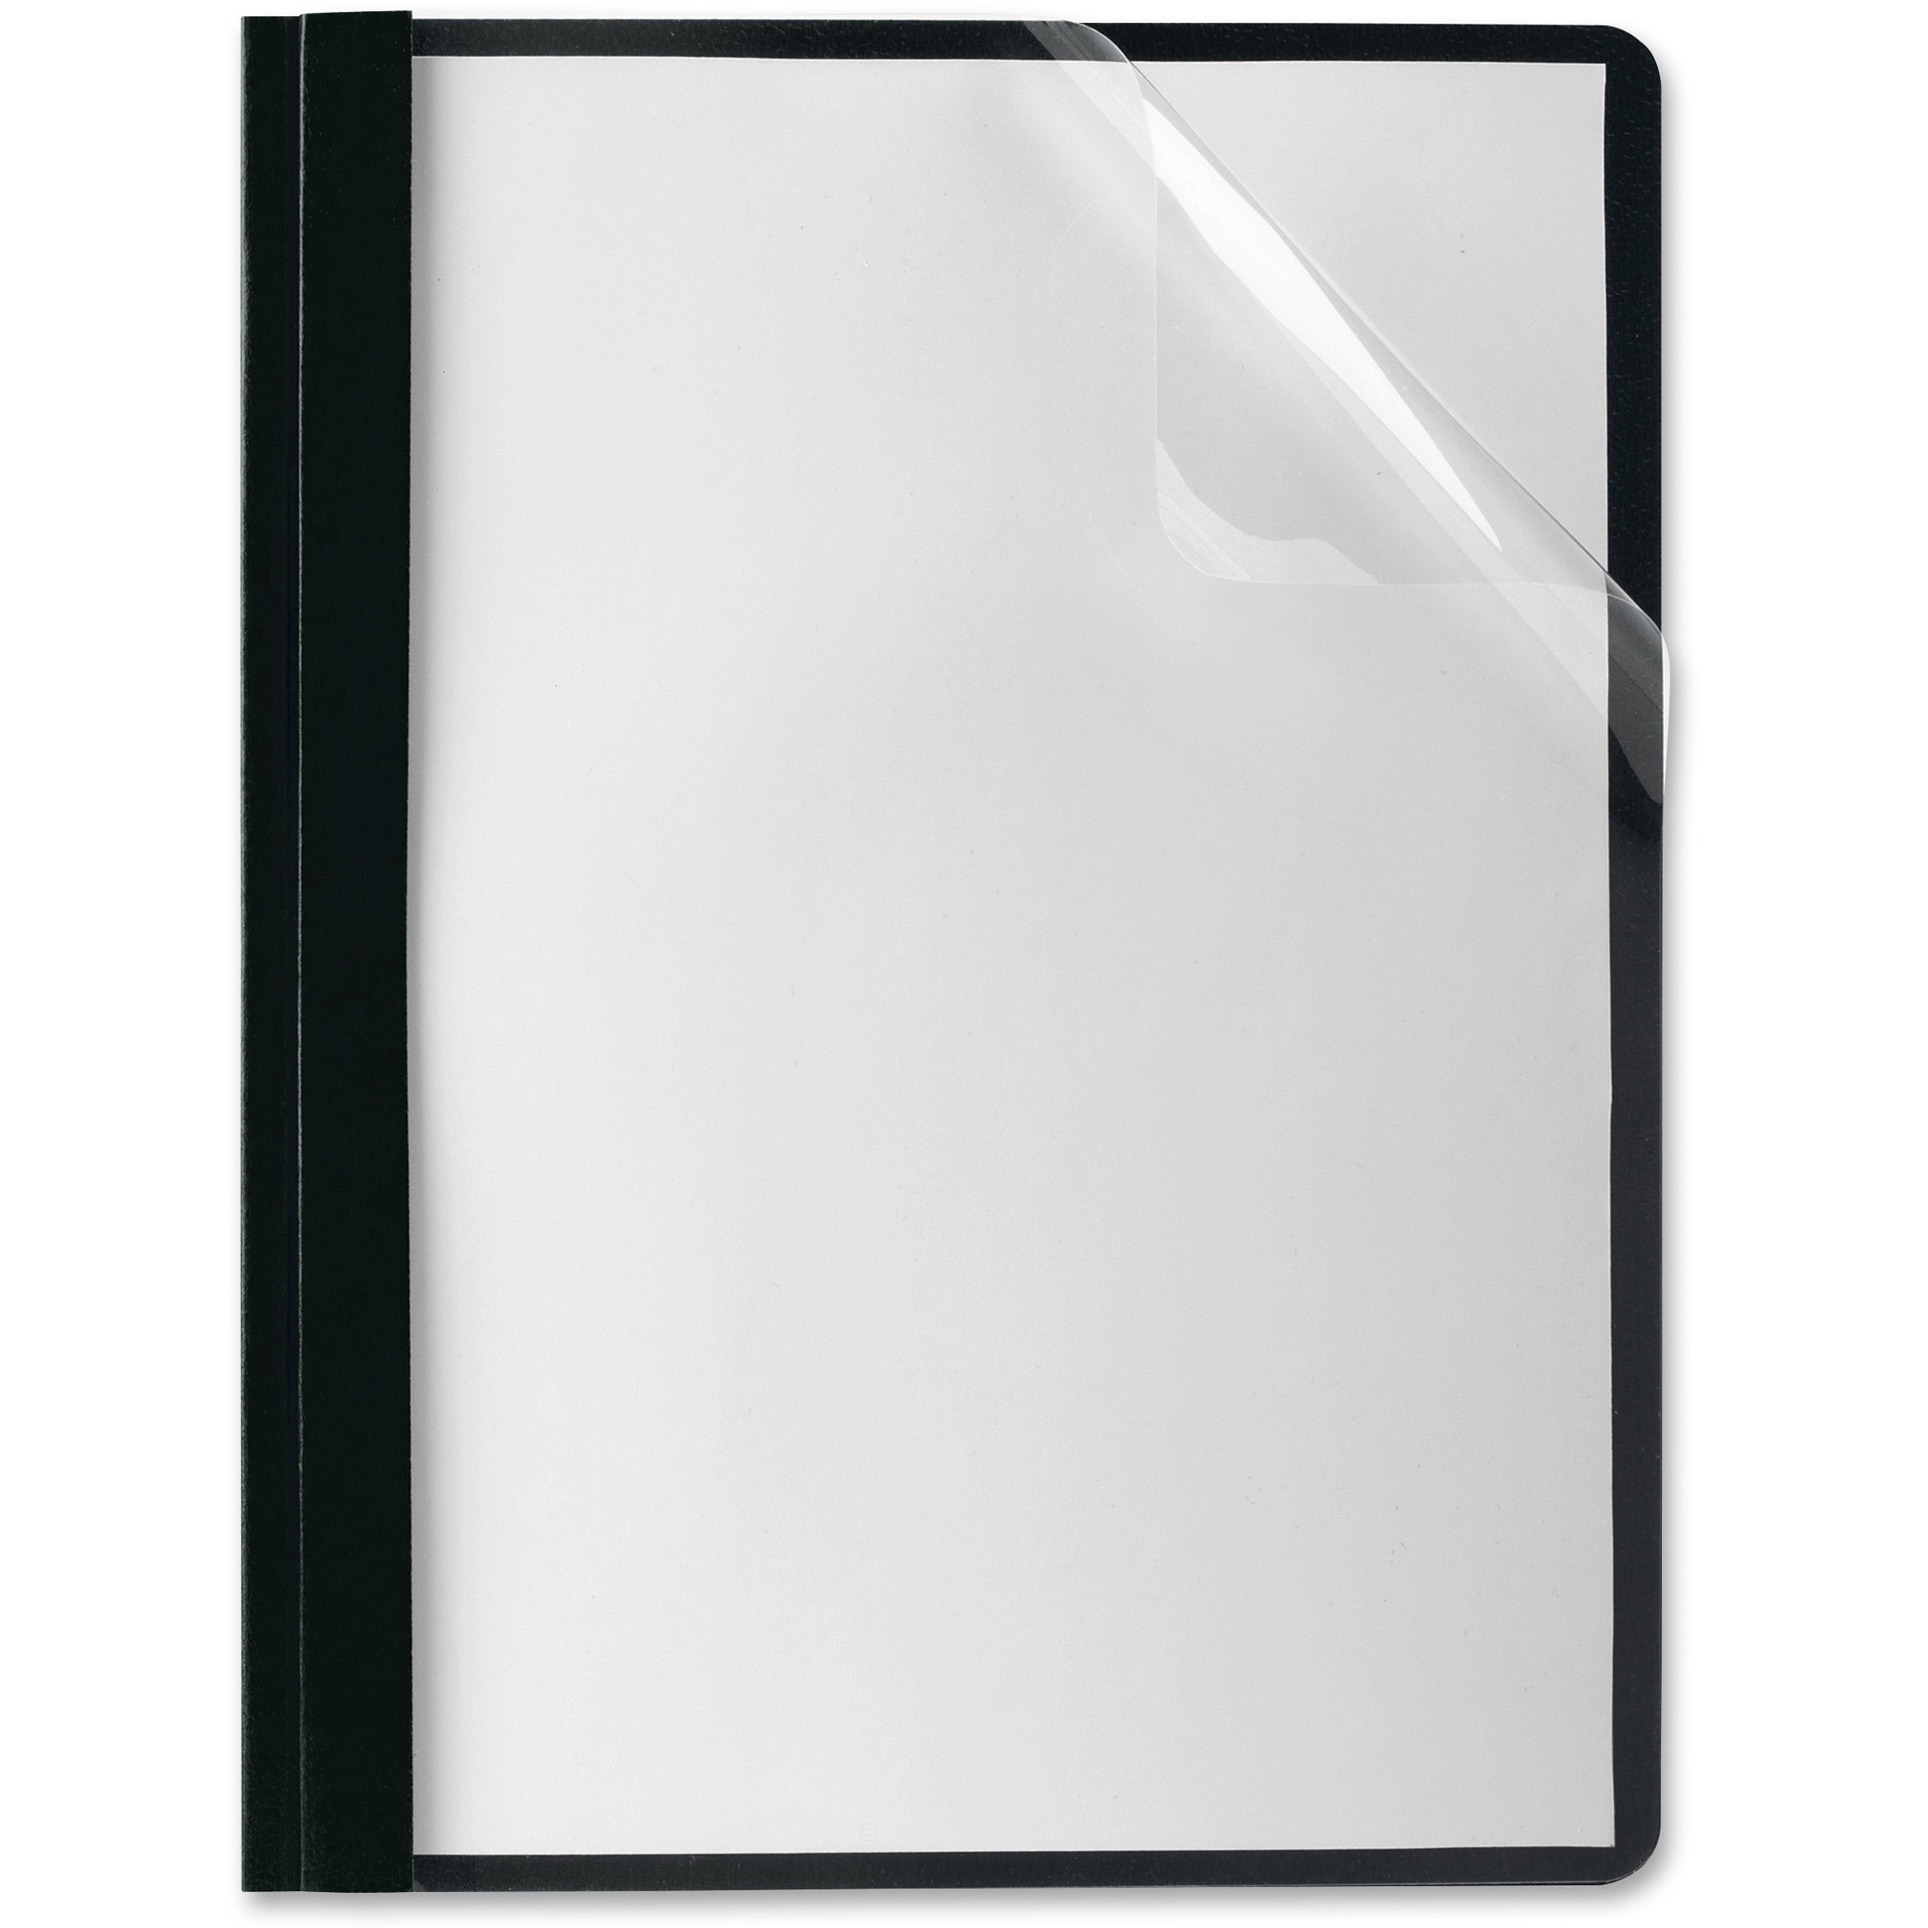 Oxford, OXF58806, Premium Clear Front Report Covers, 25 / Box, Black,Clear